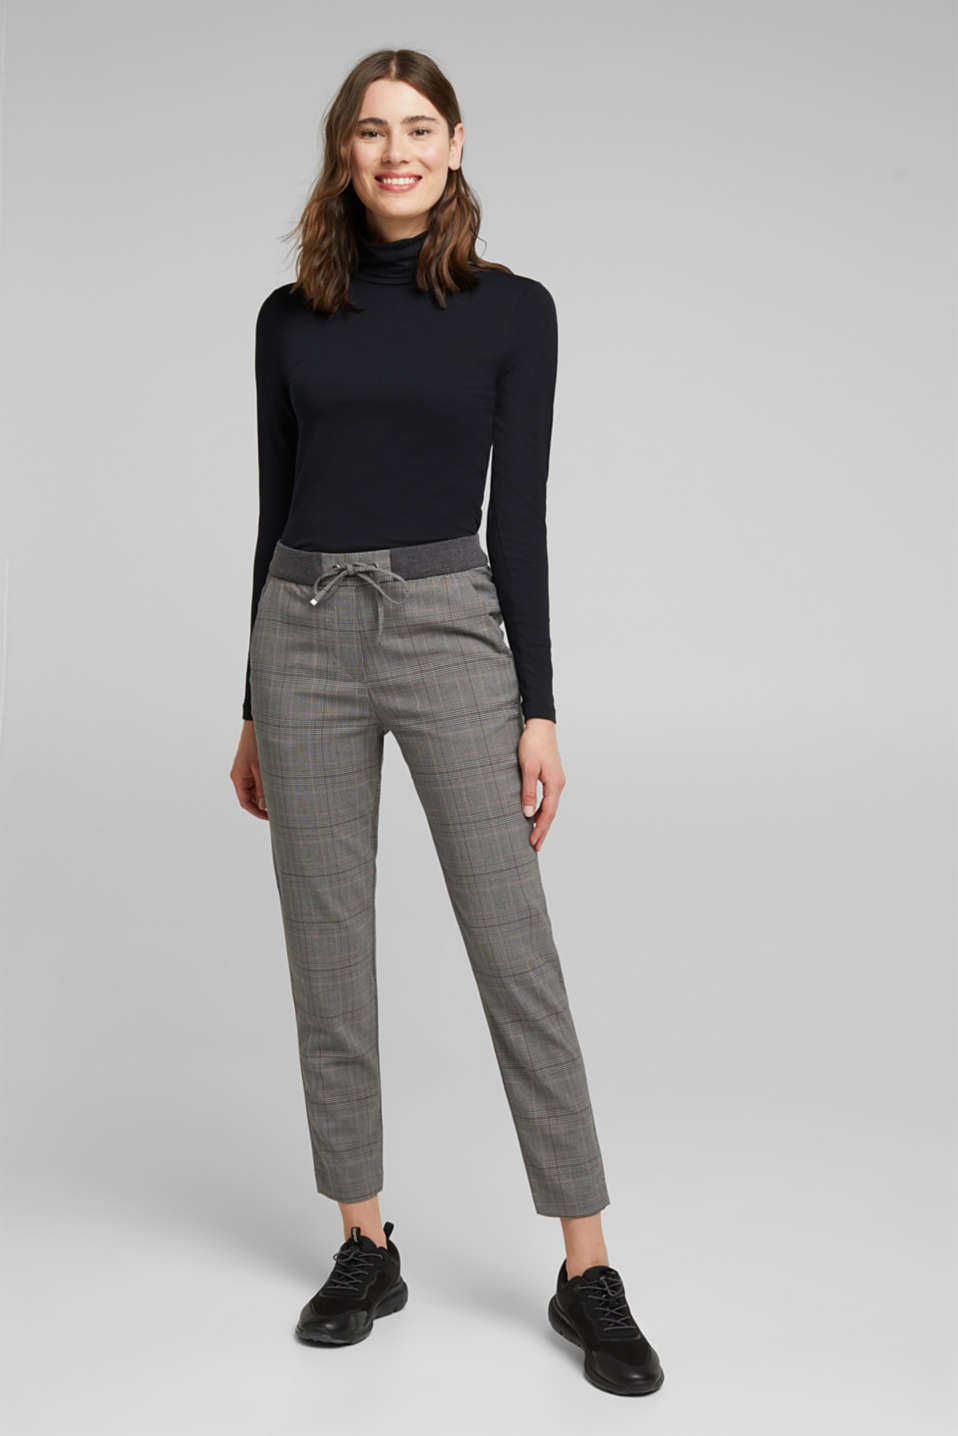 Esprit - Pantalon stretch de style jogging